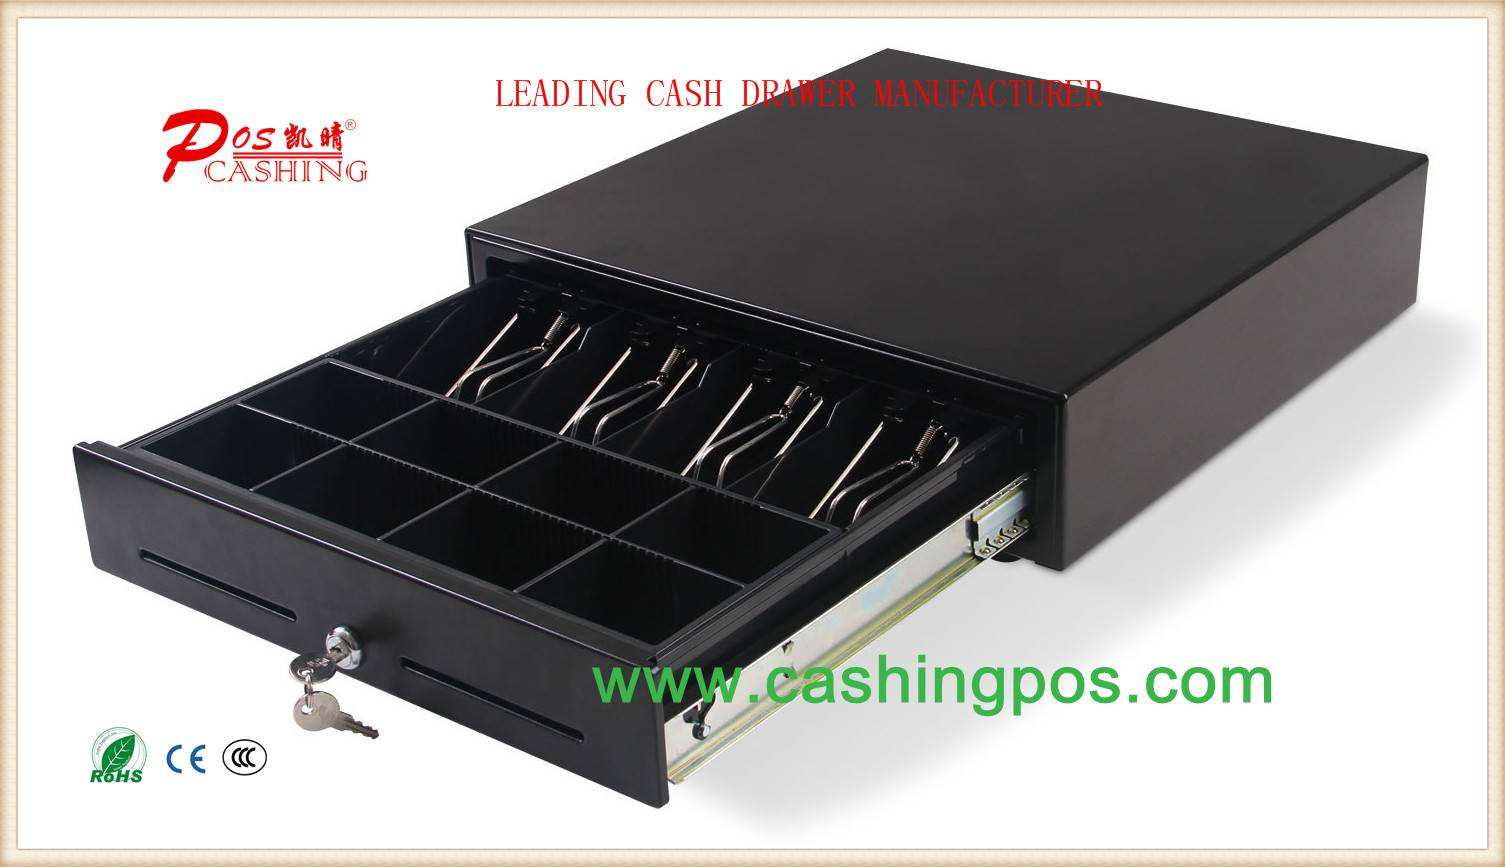 QS-410 Slide Cash Drawer